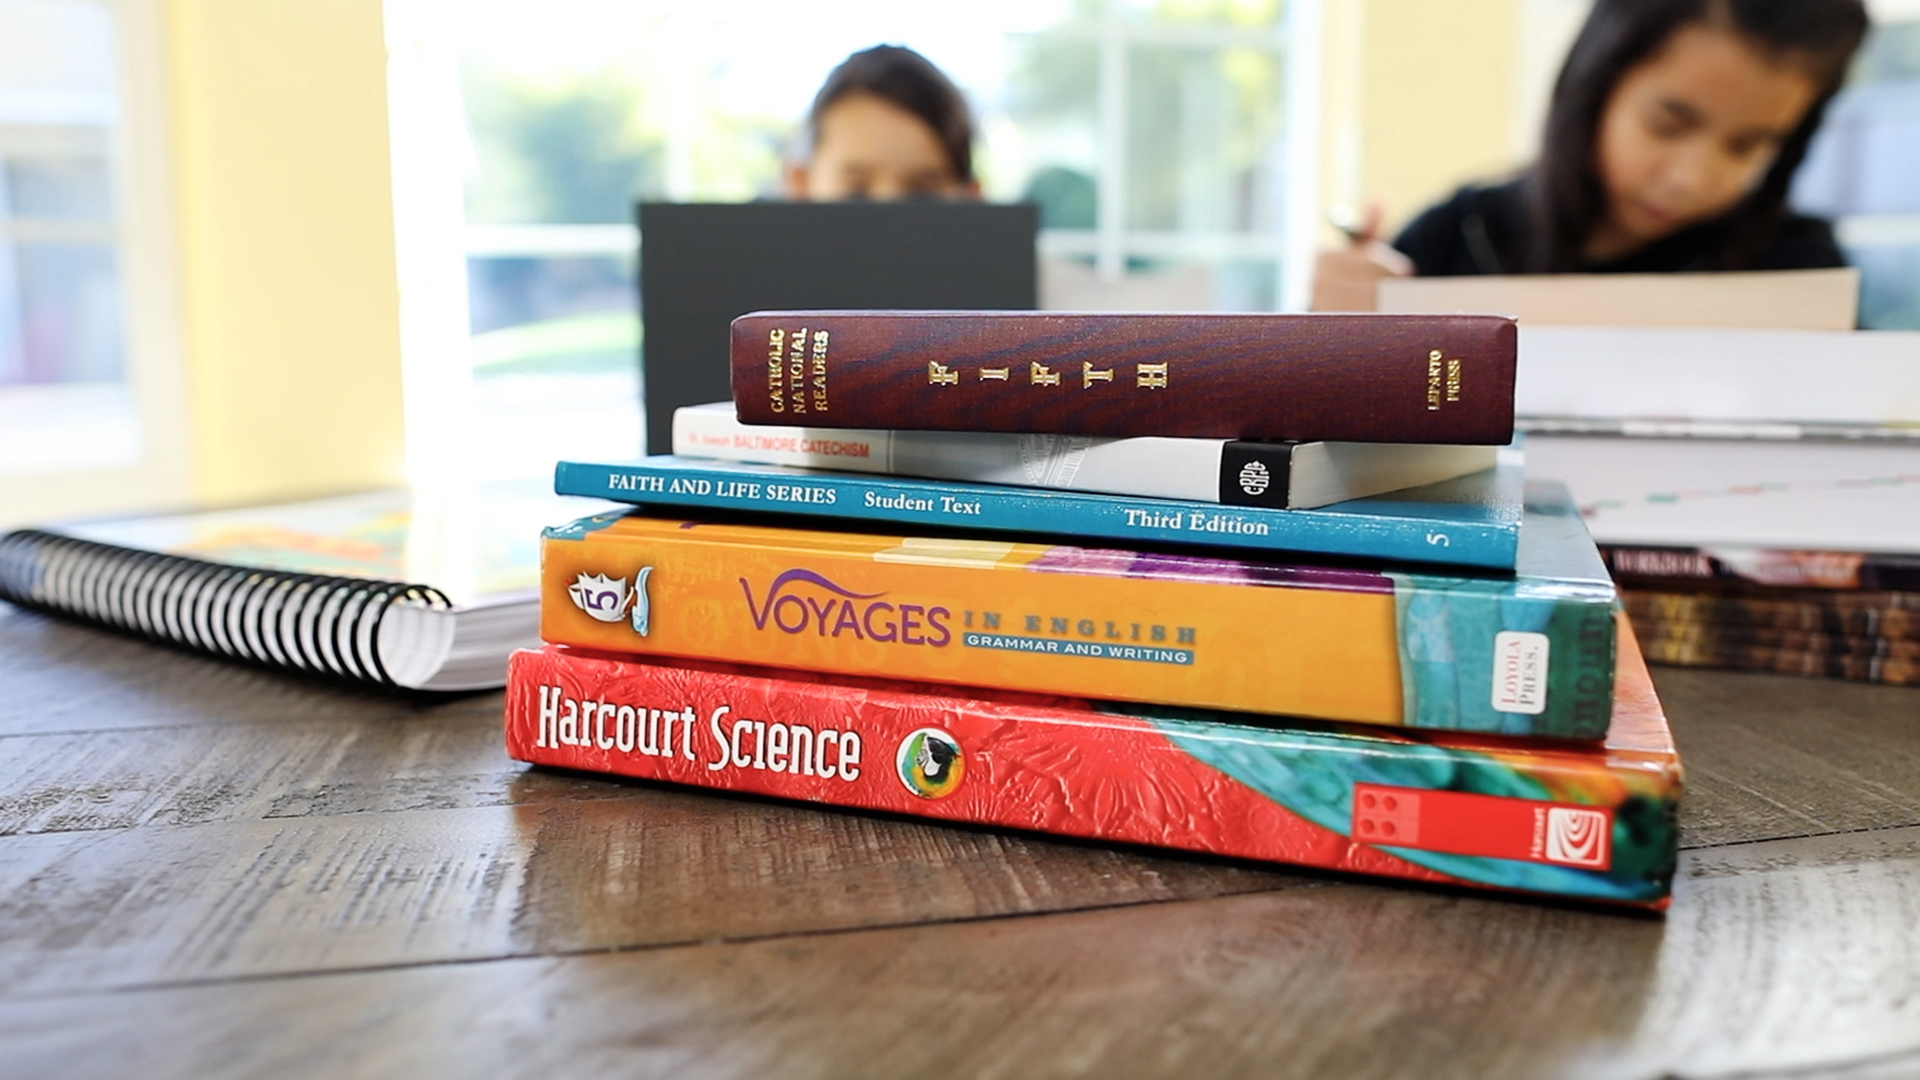 Small stack of textbooks on a table with two children studying in the background